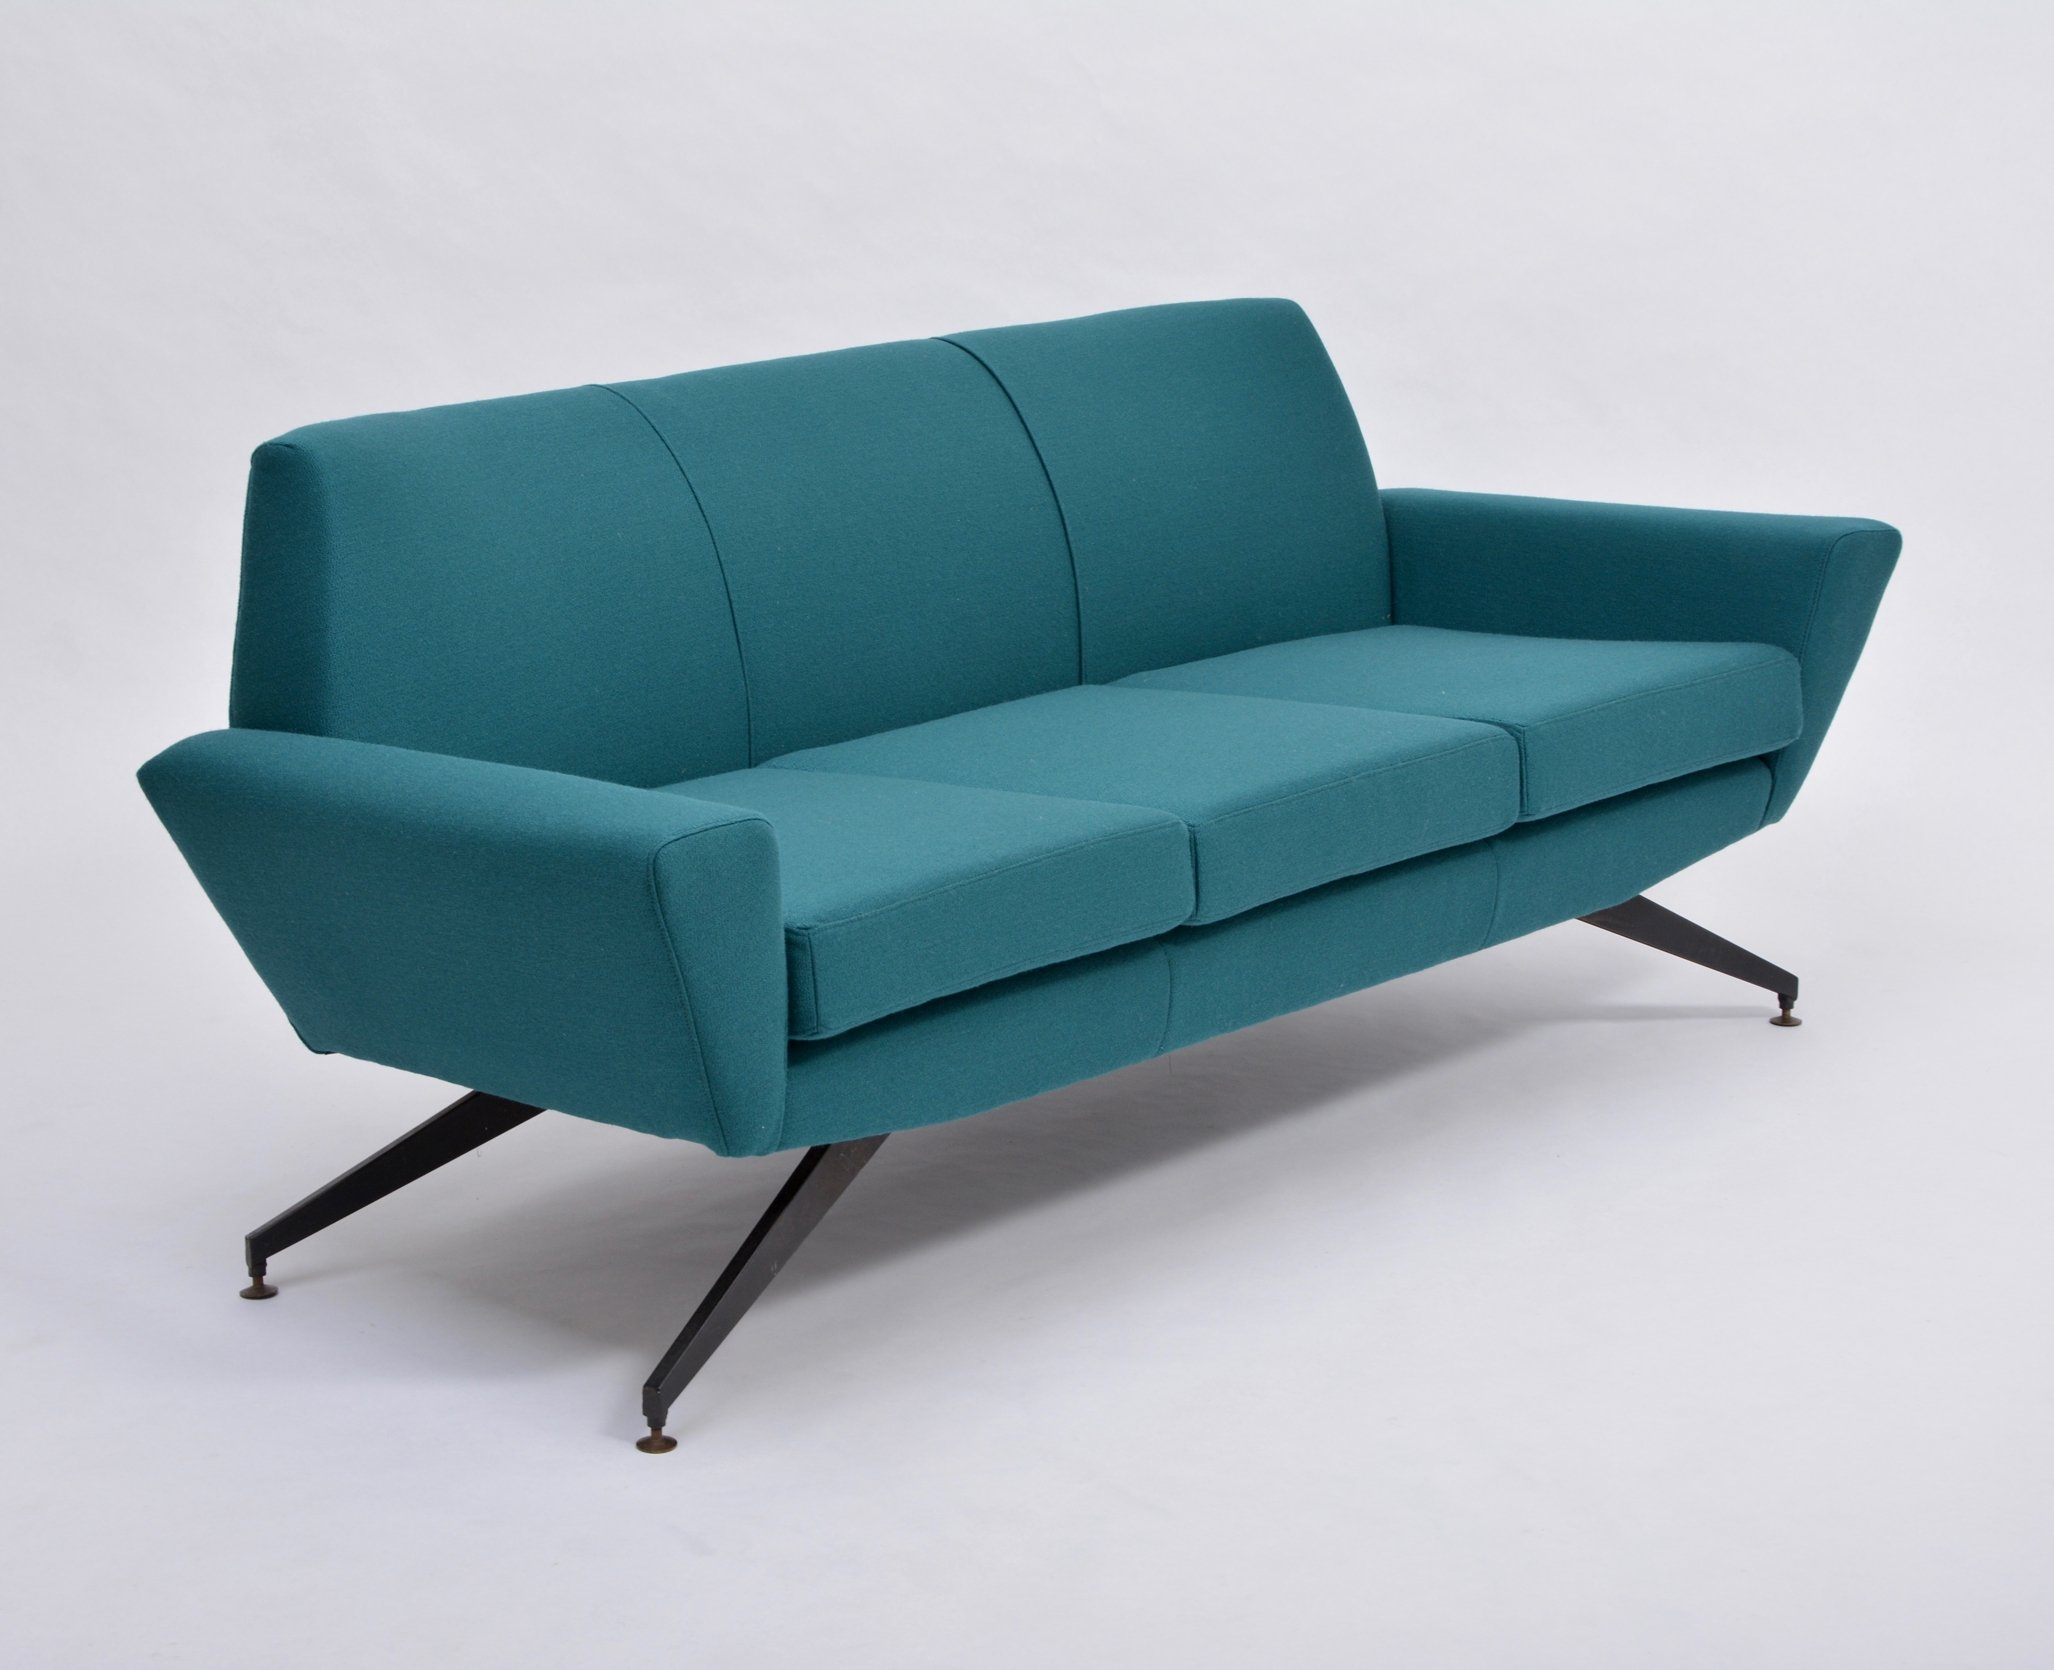 Picture of: Italian Mid Century Modern Sofa With Metal Base By Lenzi 1950s 143062